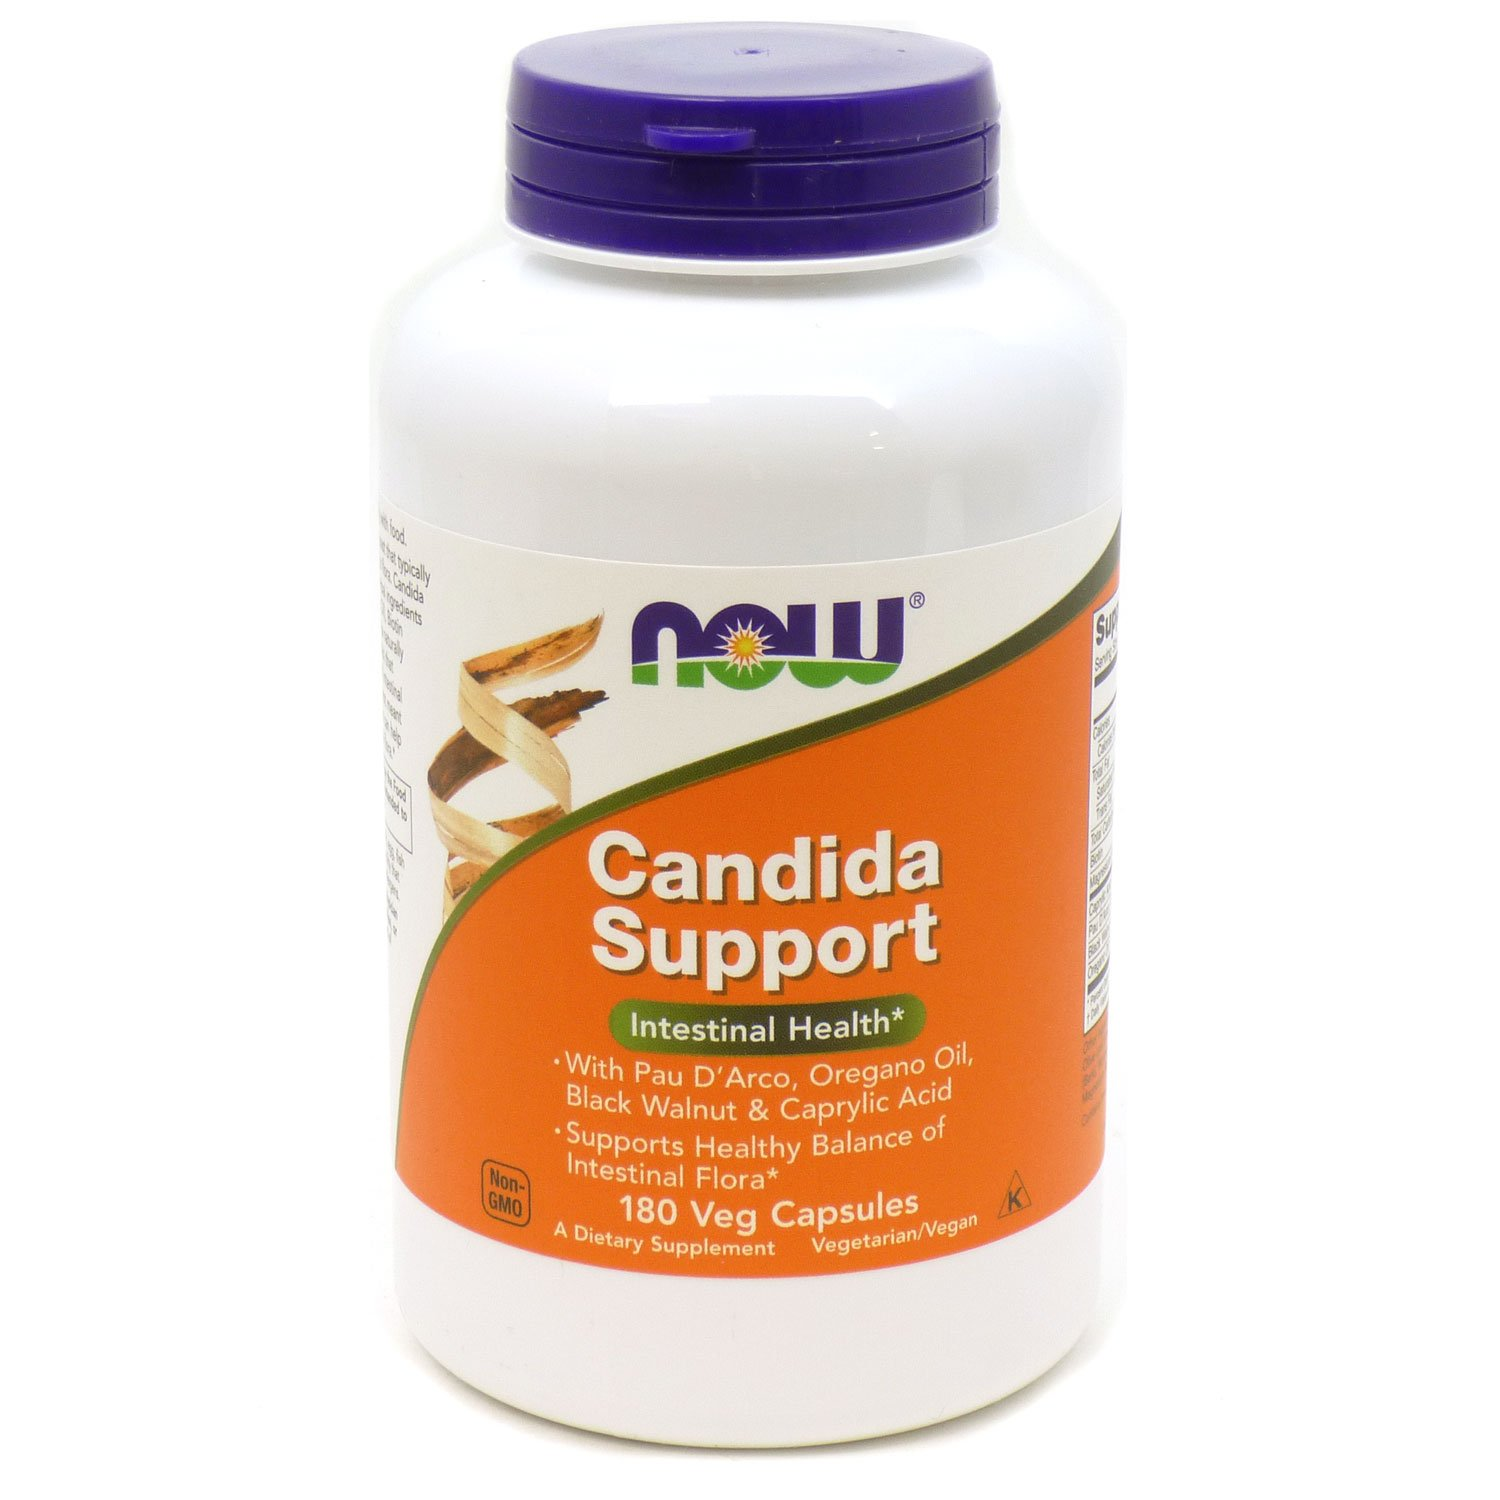 NOW Candida Support 180 Capsules Image 1